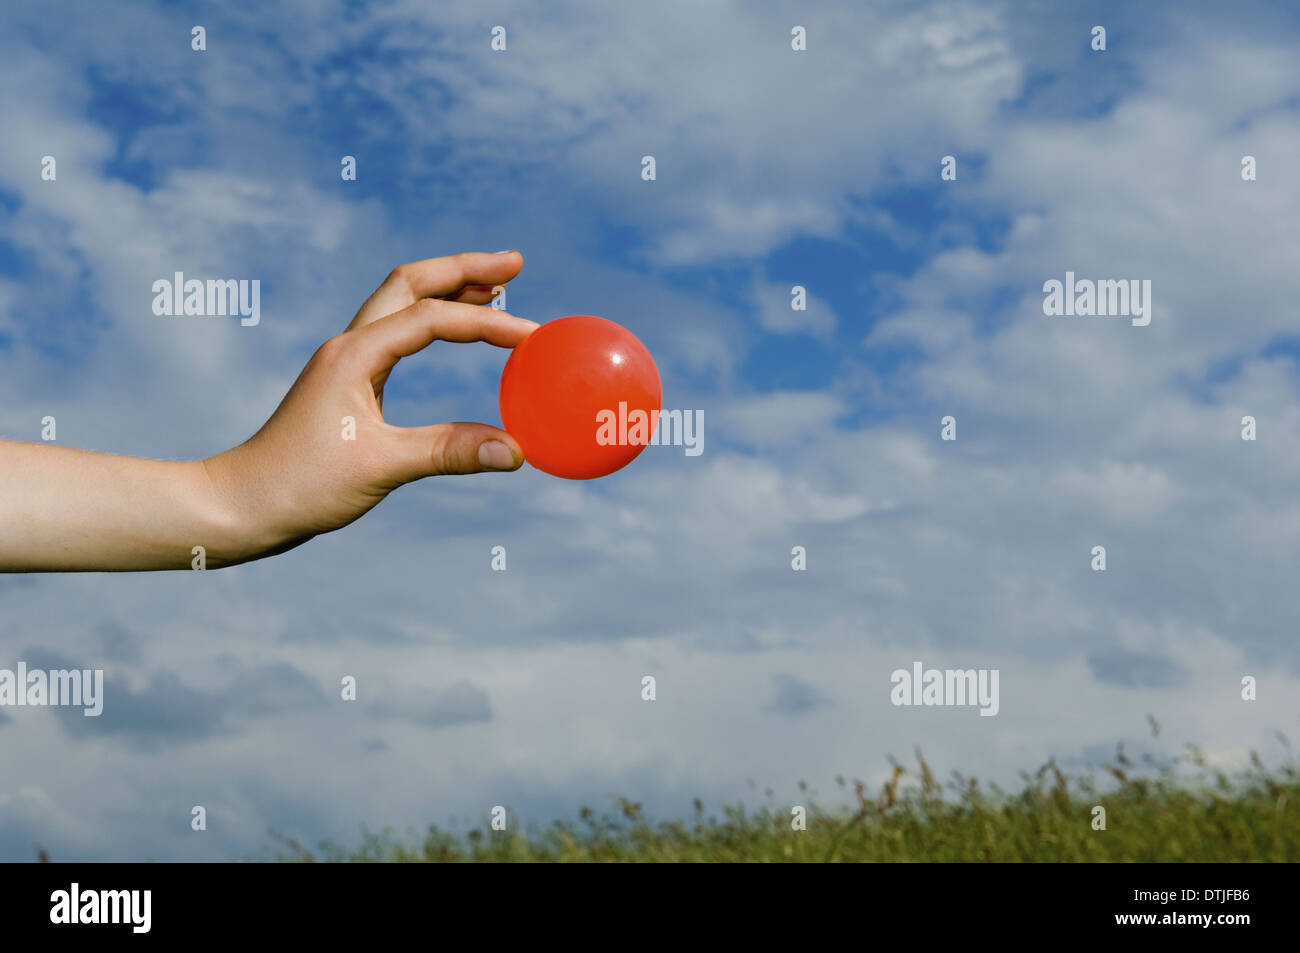 A person's outstretched hand holding a red ball Gloucestershire England Stock Photo